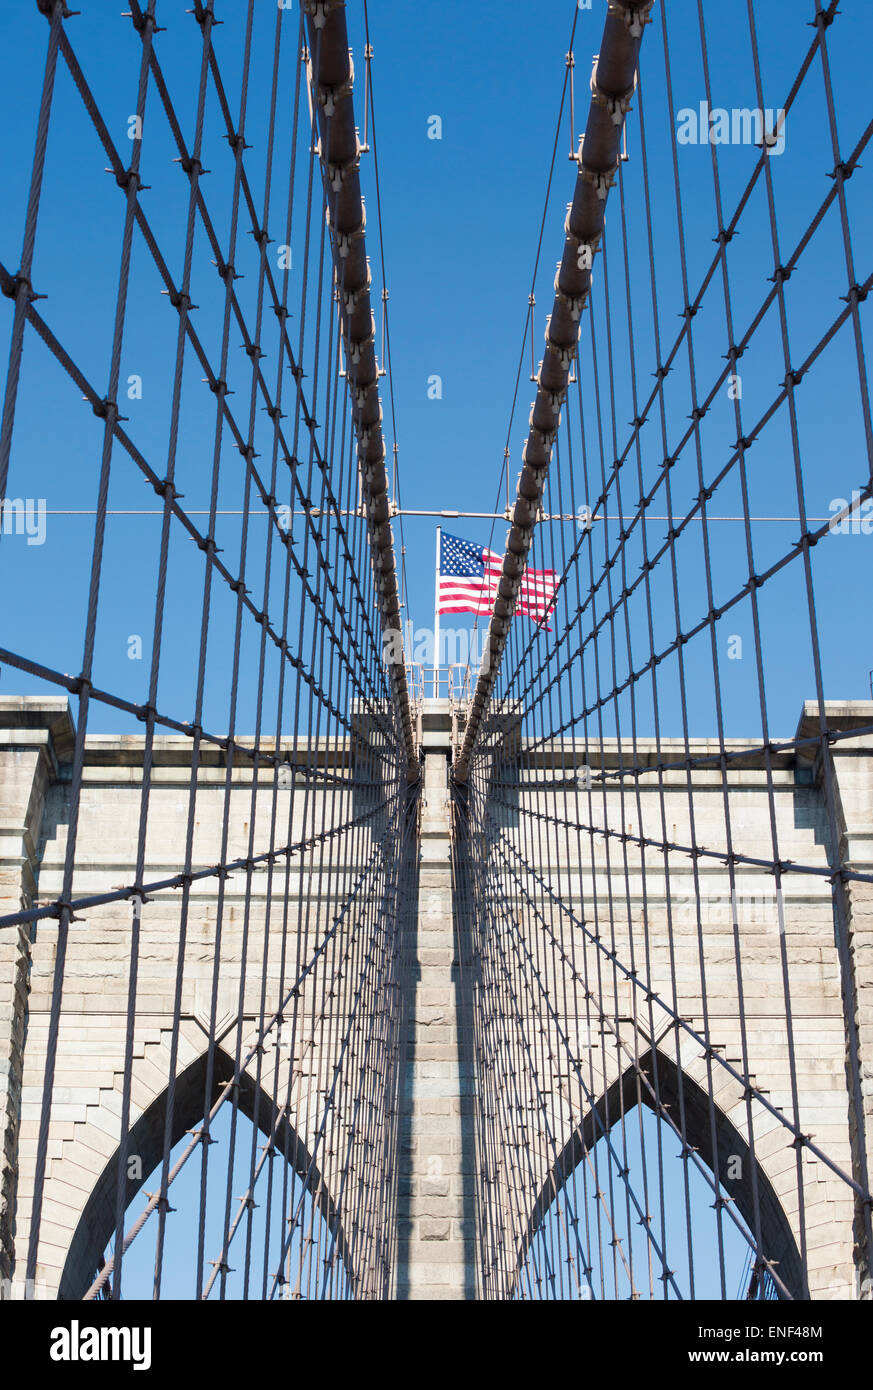 New York, New York State, United States of America.  Brooklyn Bridge with the American flag flying above the cables - Stock Image